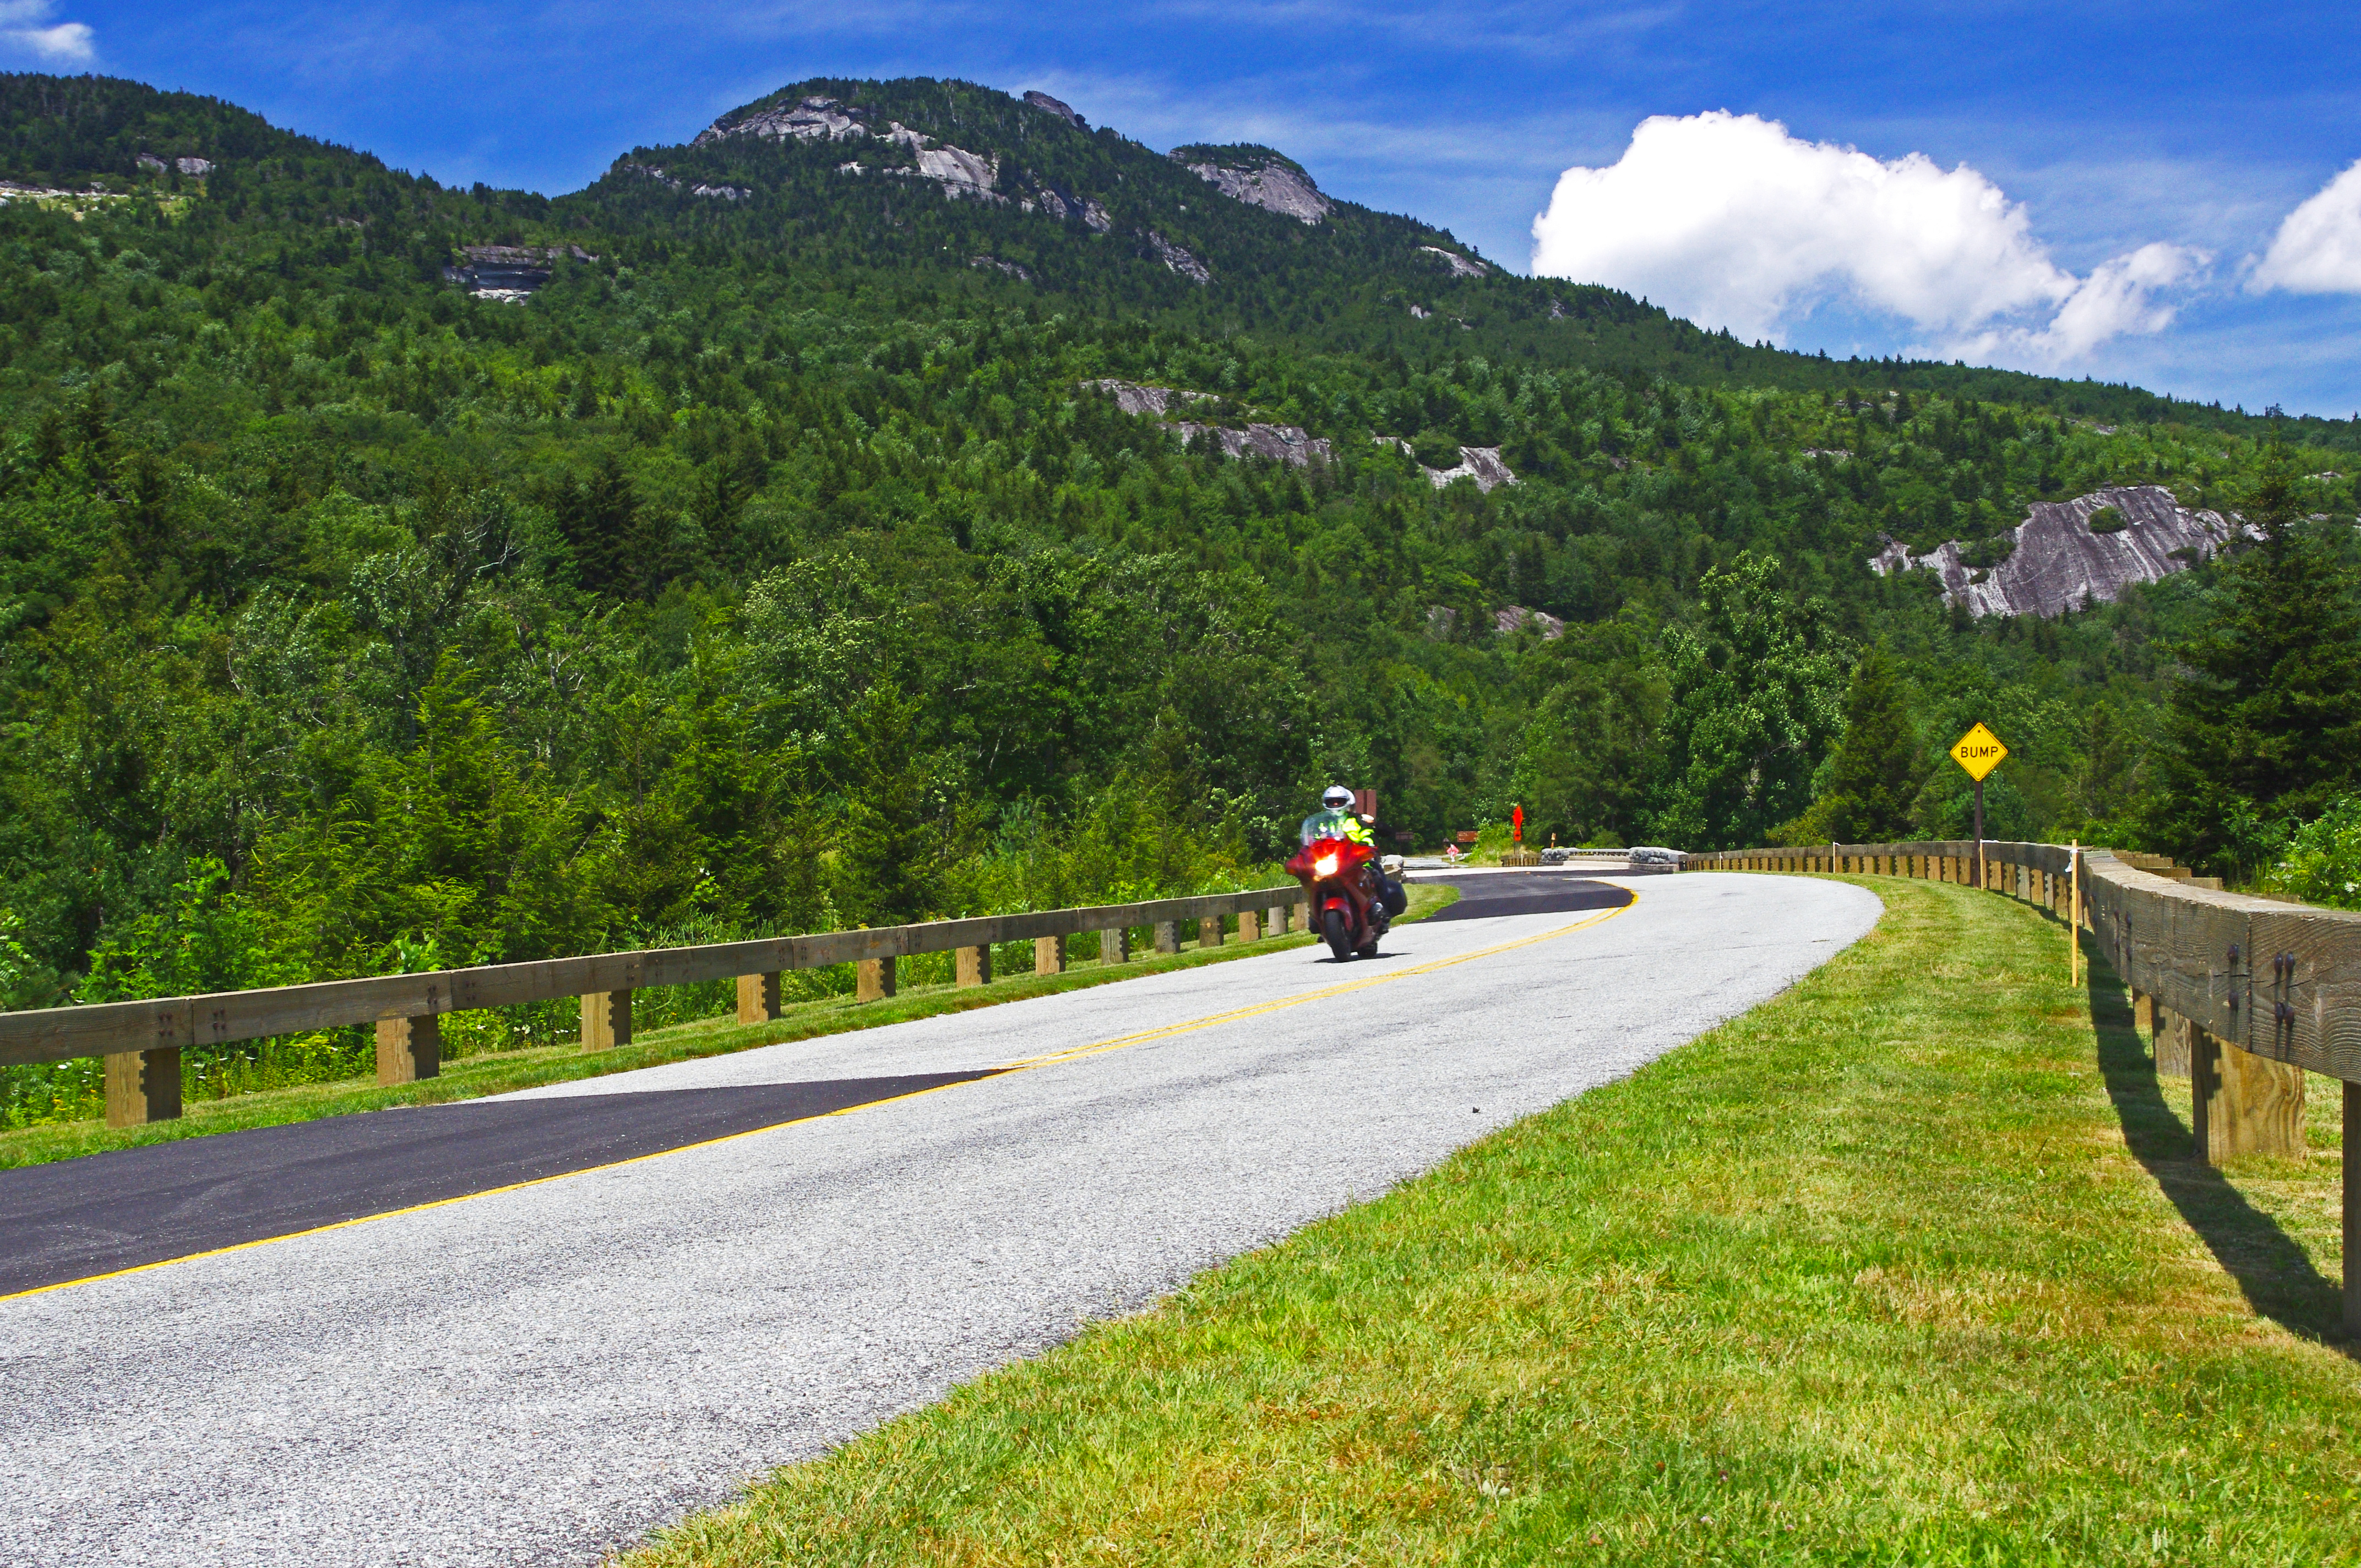 Of Boone Starts The Climb Into The High Mountains Of North Carolina